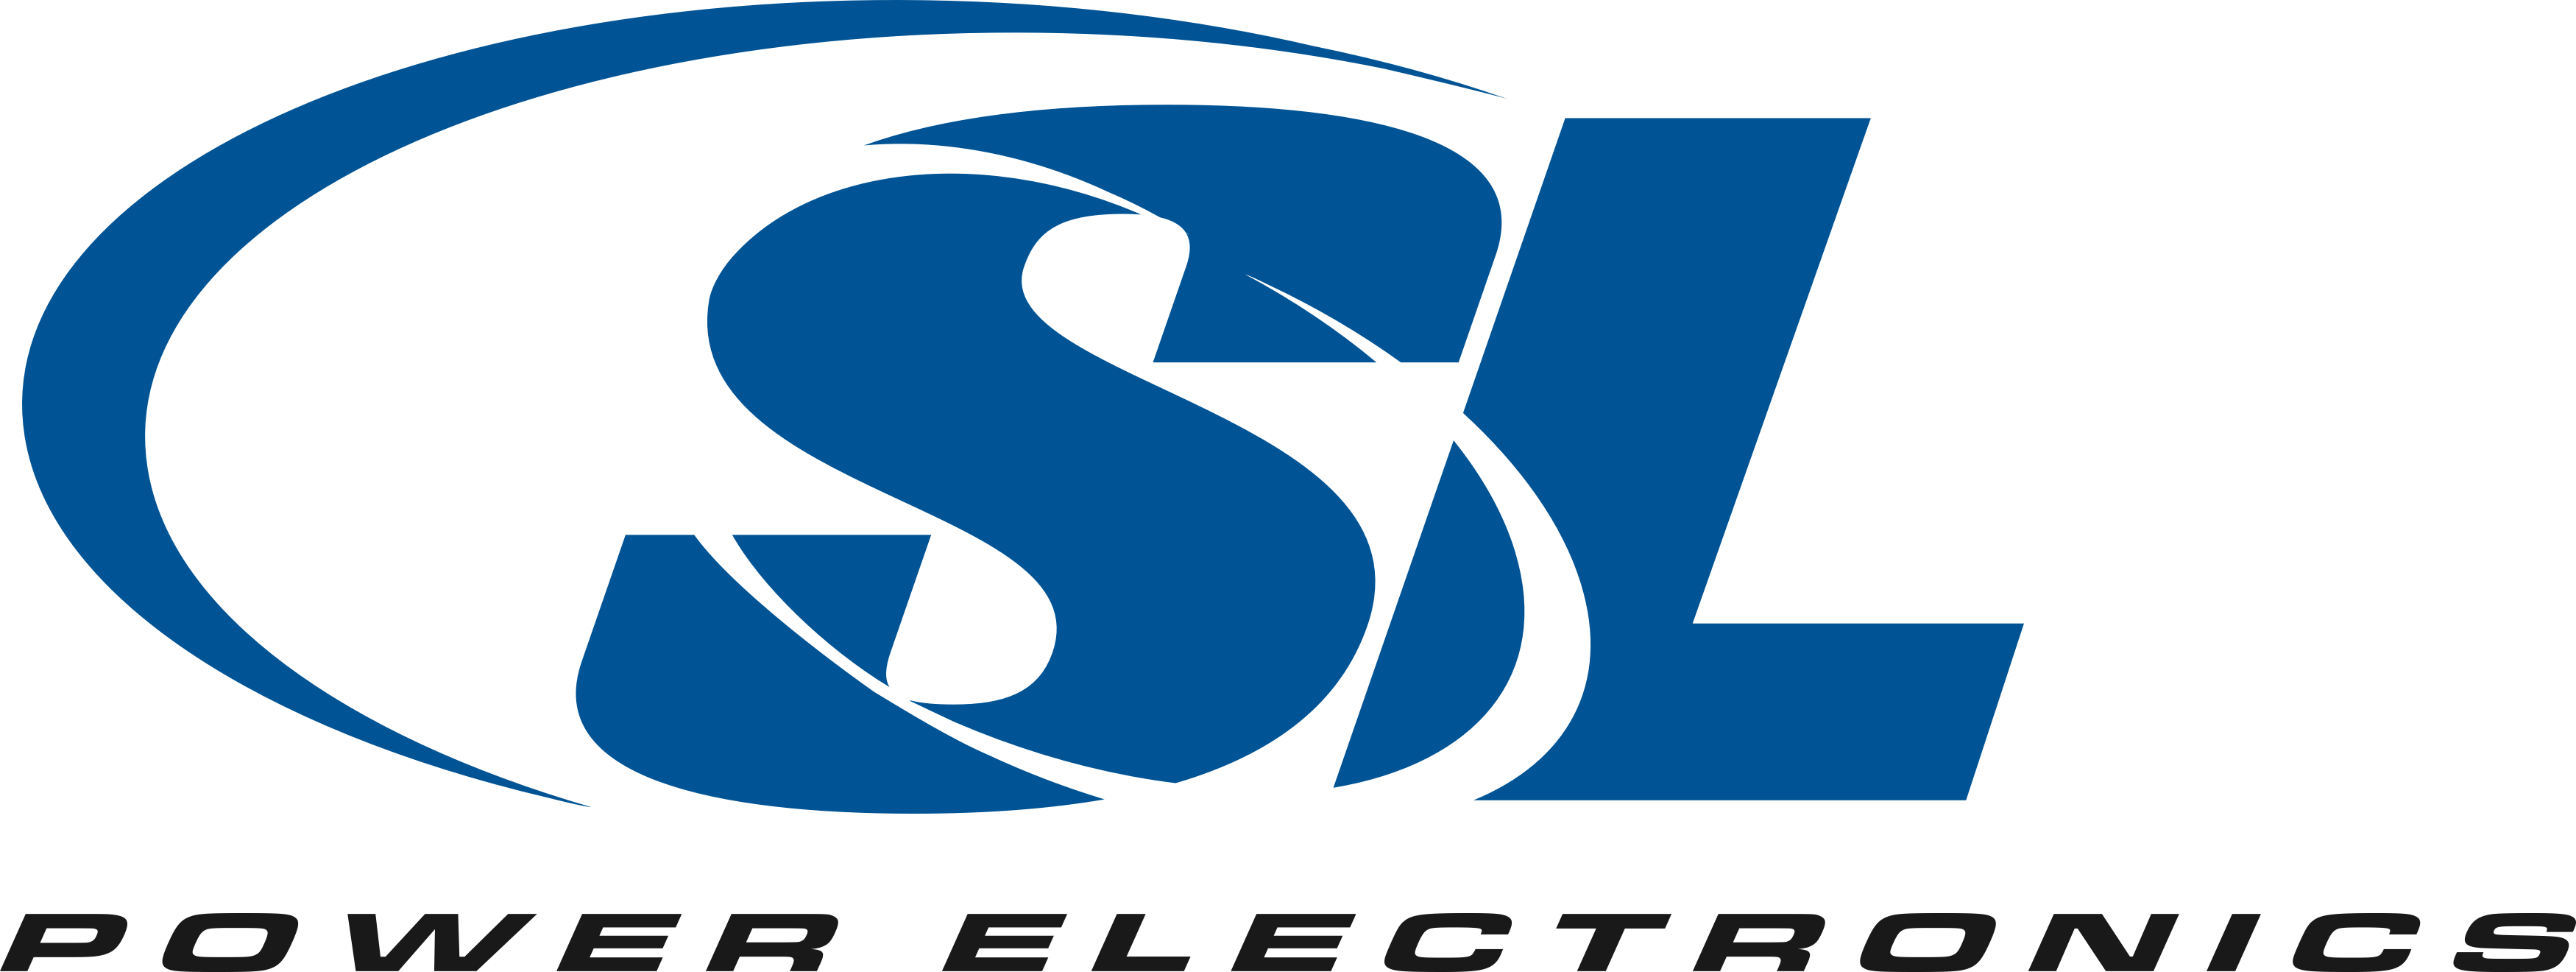 SL-Power-Power-Supplies-Design-Logo